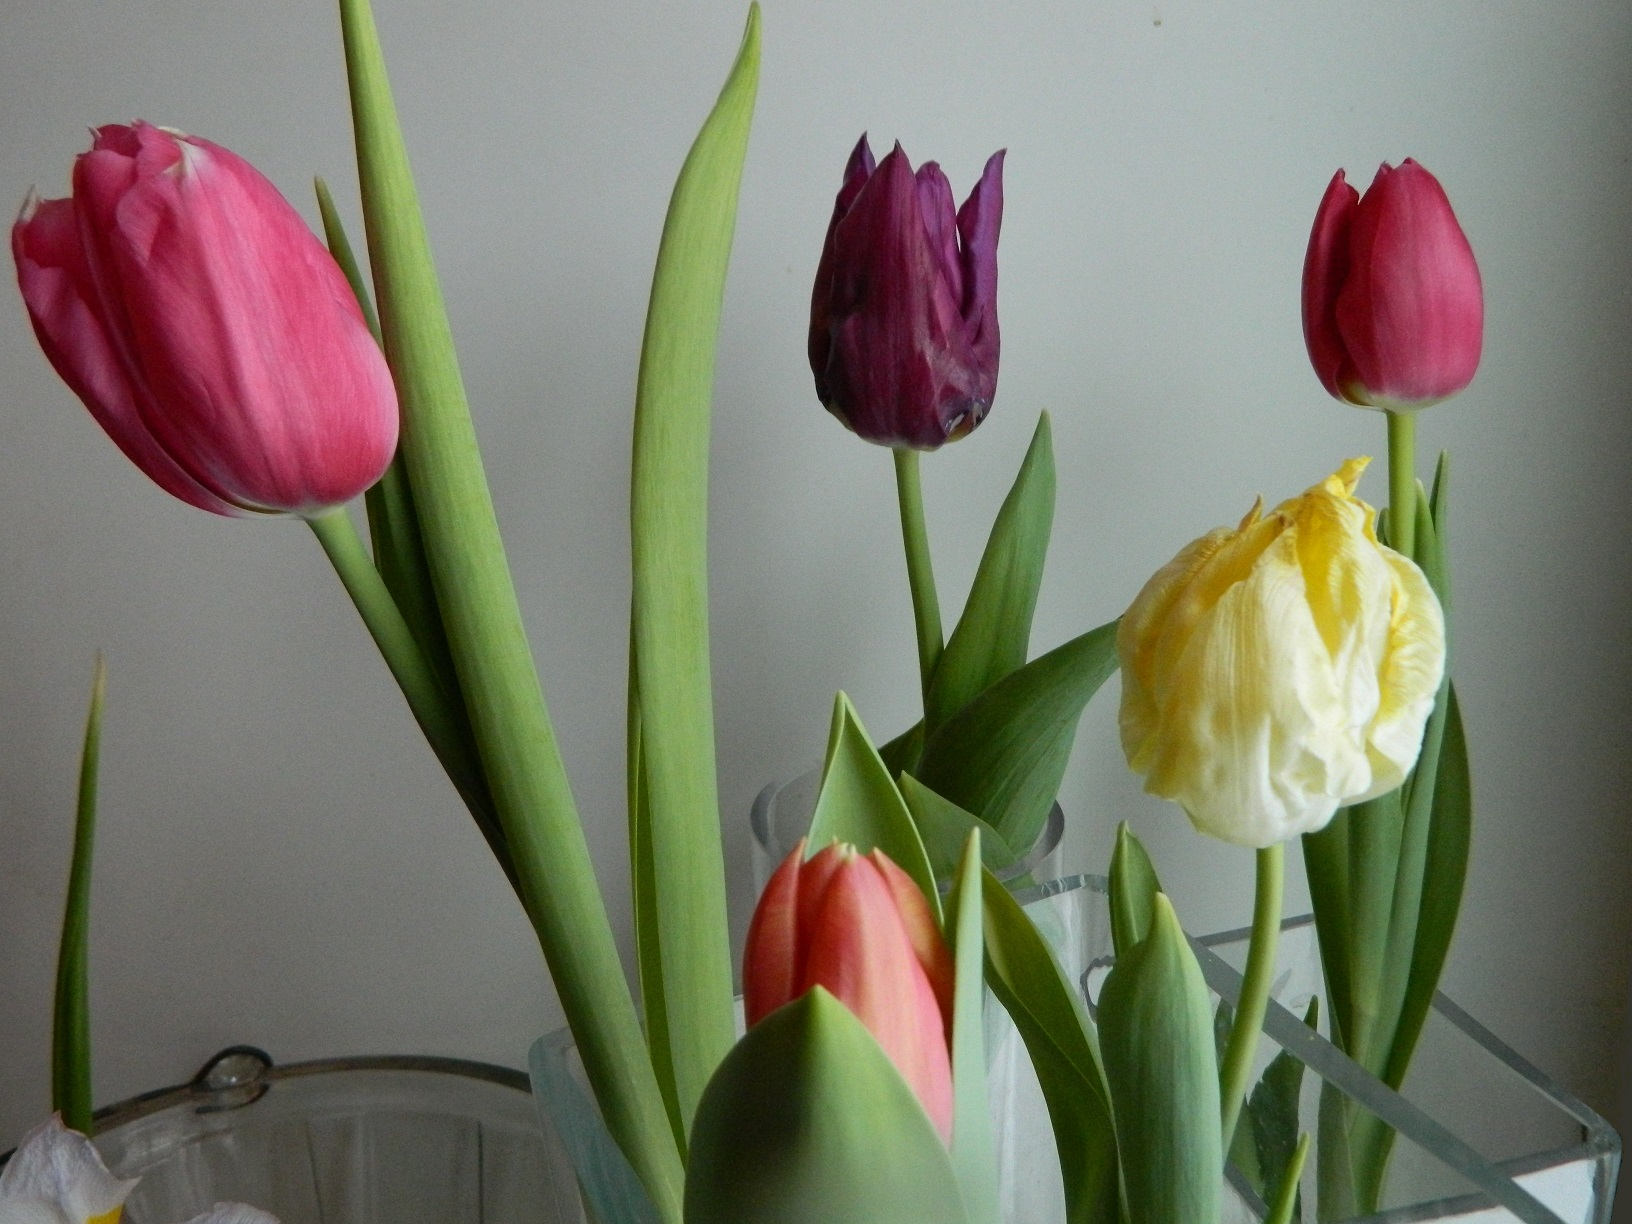 tulip bulbs from a supermarket yielded mixed results with indoor water forcing a yellow tulip is poorly formed the purple tulip is imperfect